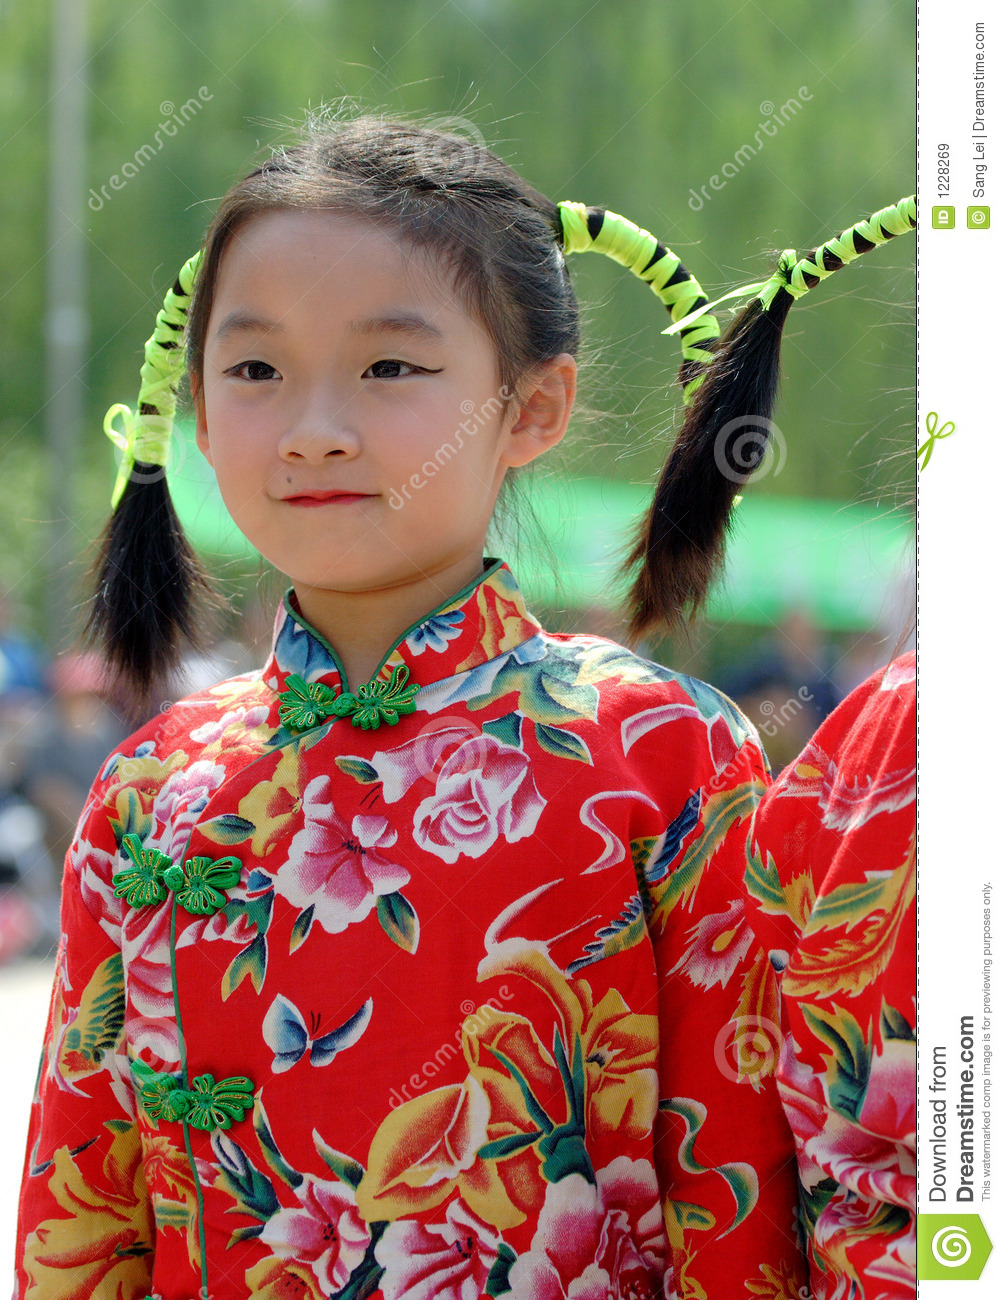 Https Www Dreamstime Com Royalty Free Stock Images Chinese Child Image1228269